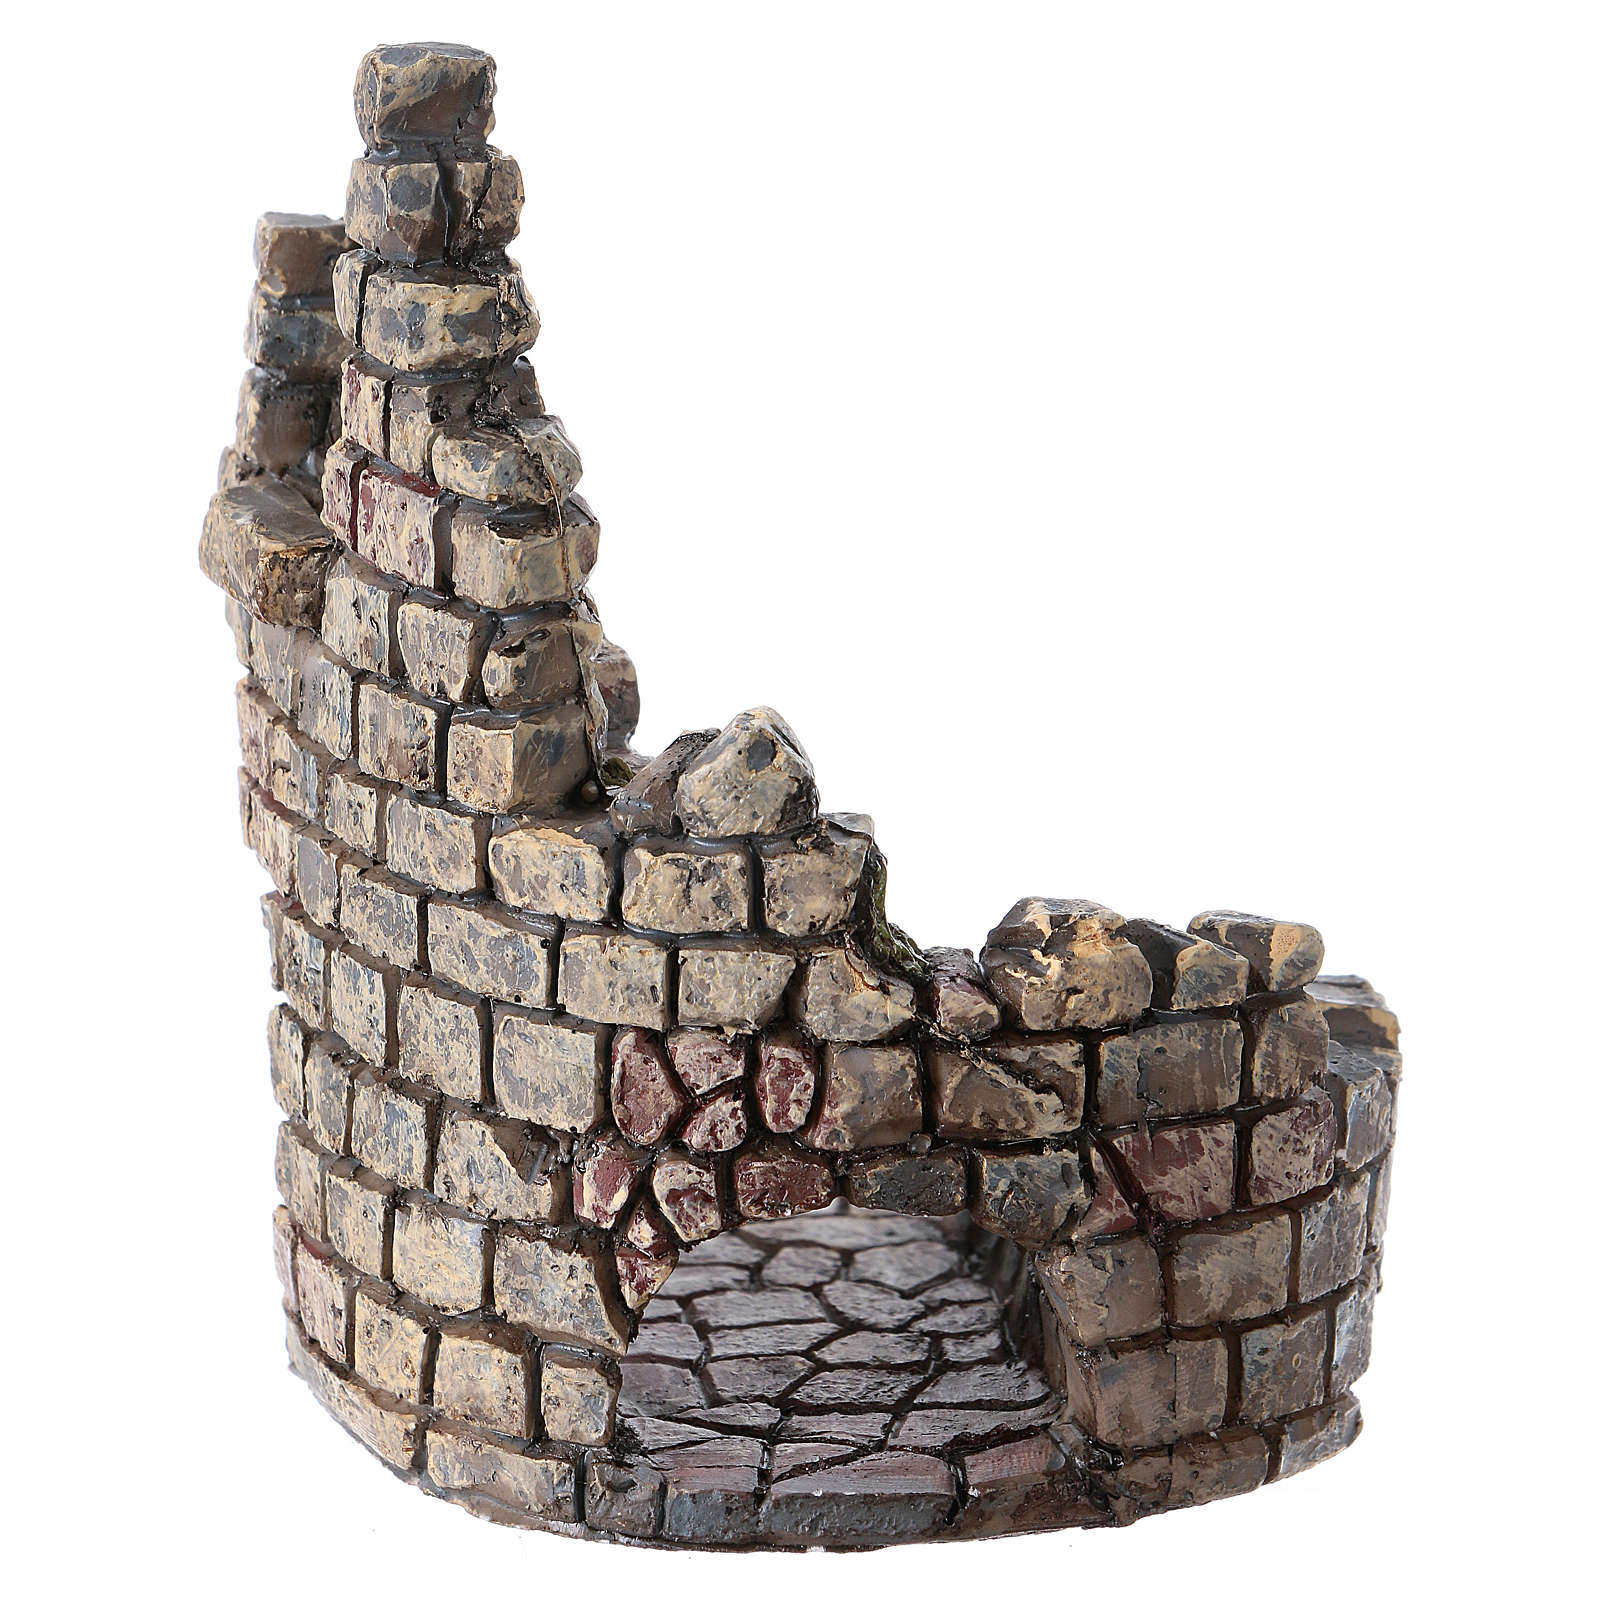 Spiral Rock Staircase 10x5x5cm resin for nativity 4